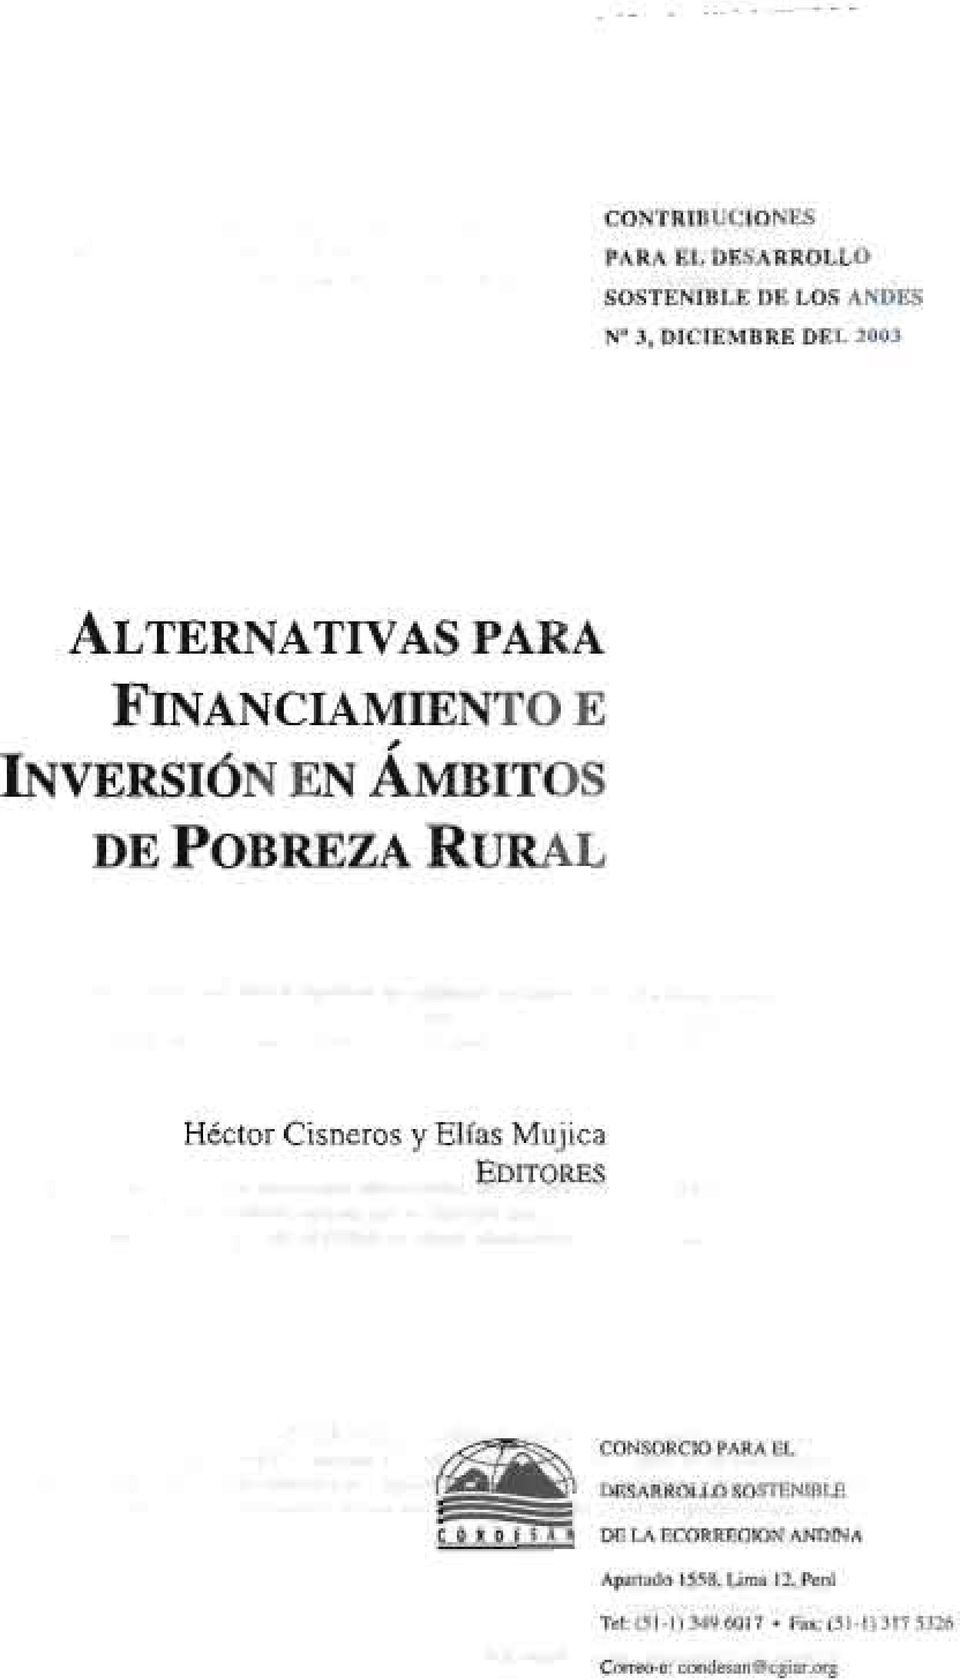 "ALTERNATIVASPARA FINANCIAMIENTO E "" INvERSION EN AMBITOS DE POBREZA RURAL Hector Cisneros y Elias"